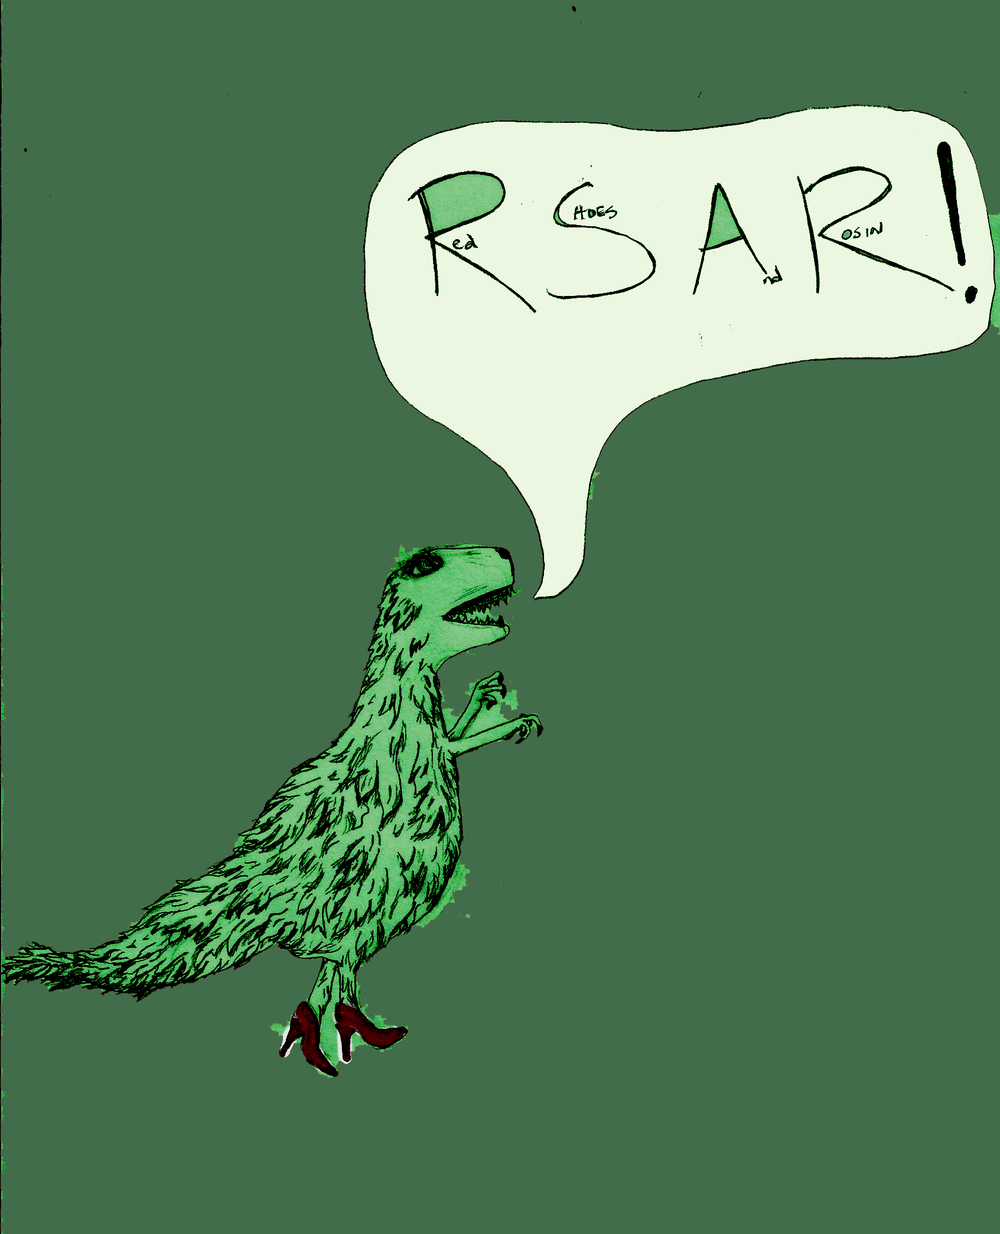 ere is the RSARasaurus (pronounced arr-ess-ARr-asaurus). Artistic credit goes to band members Shawna Cyphers and Jessica Watson. ©Red Shoes & Rosin